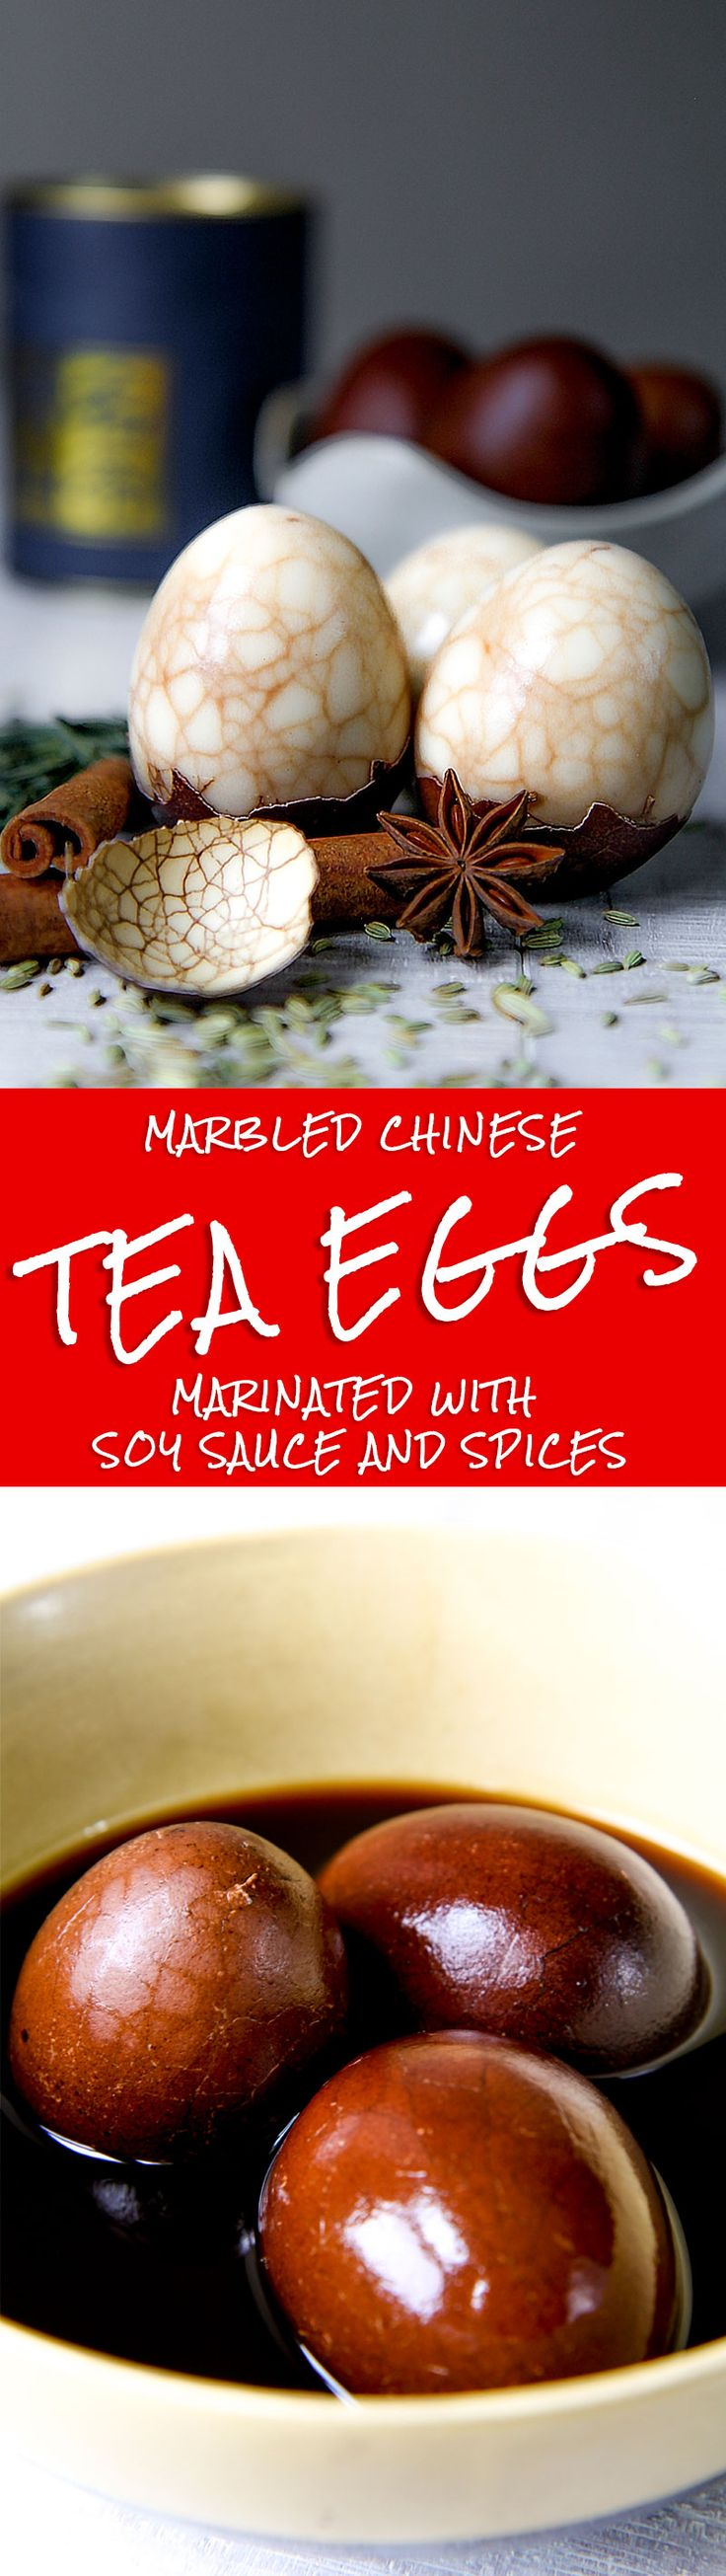 MARBLED CHINESE TEA EGGS RECIPE - Chinese tea eggs are a tasty and beautiful snack, spectacular thanks to their spiderwebded texture. The first time I ate this marbled Chinese specialty I was in Beijing. Even only a bite is unforgettable. A strong and particular flavor, not for all, but a must-to-try! - asian recipes traditional idea snack recipe